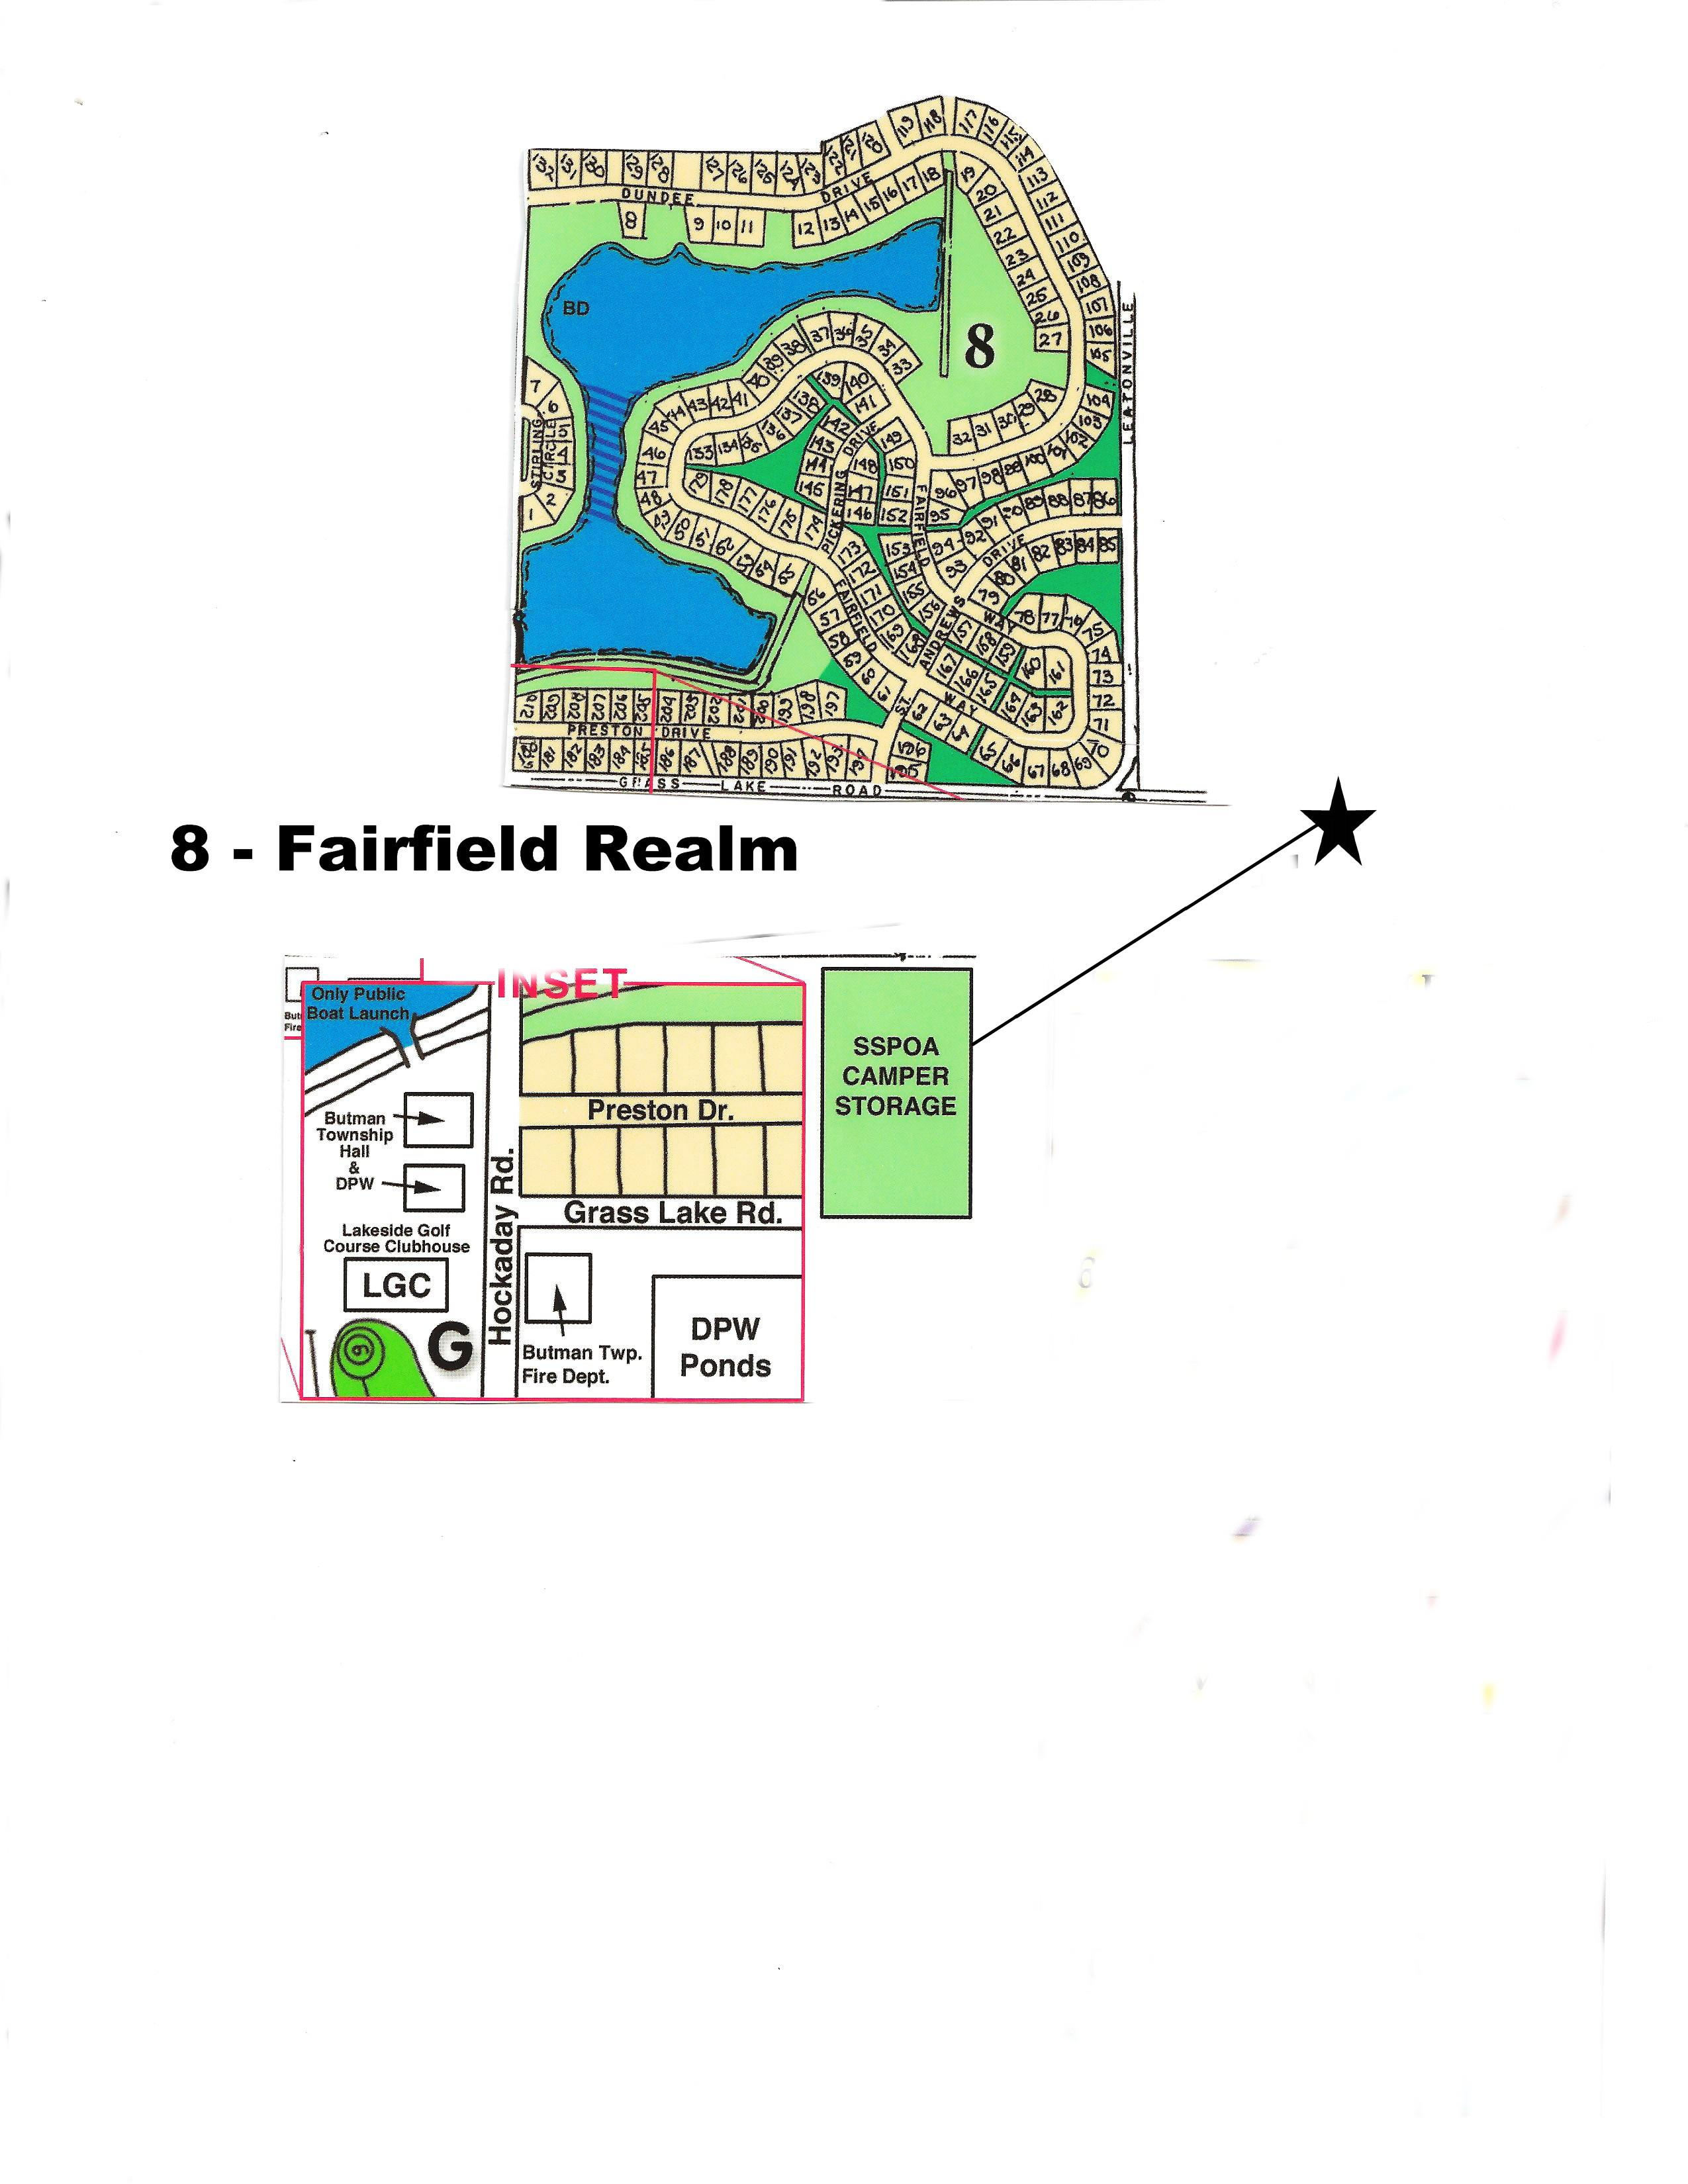 8   - FAIRFIELD REALM (F)